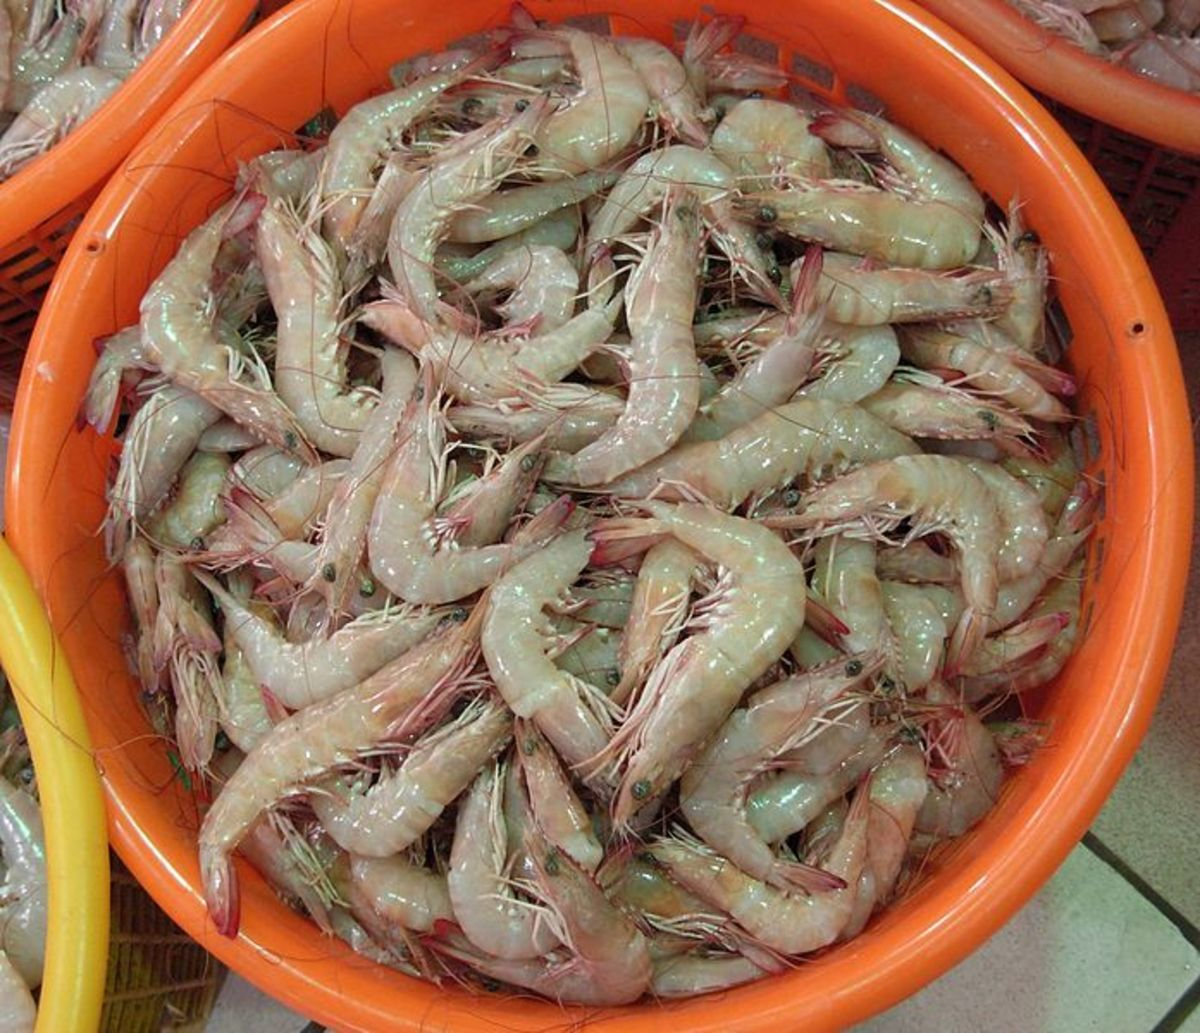 Chemmeen (Prawns), Kerala earns high revenue through its export